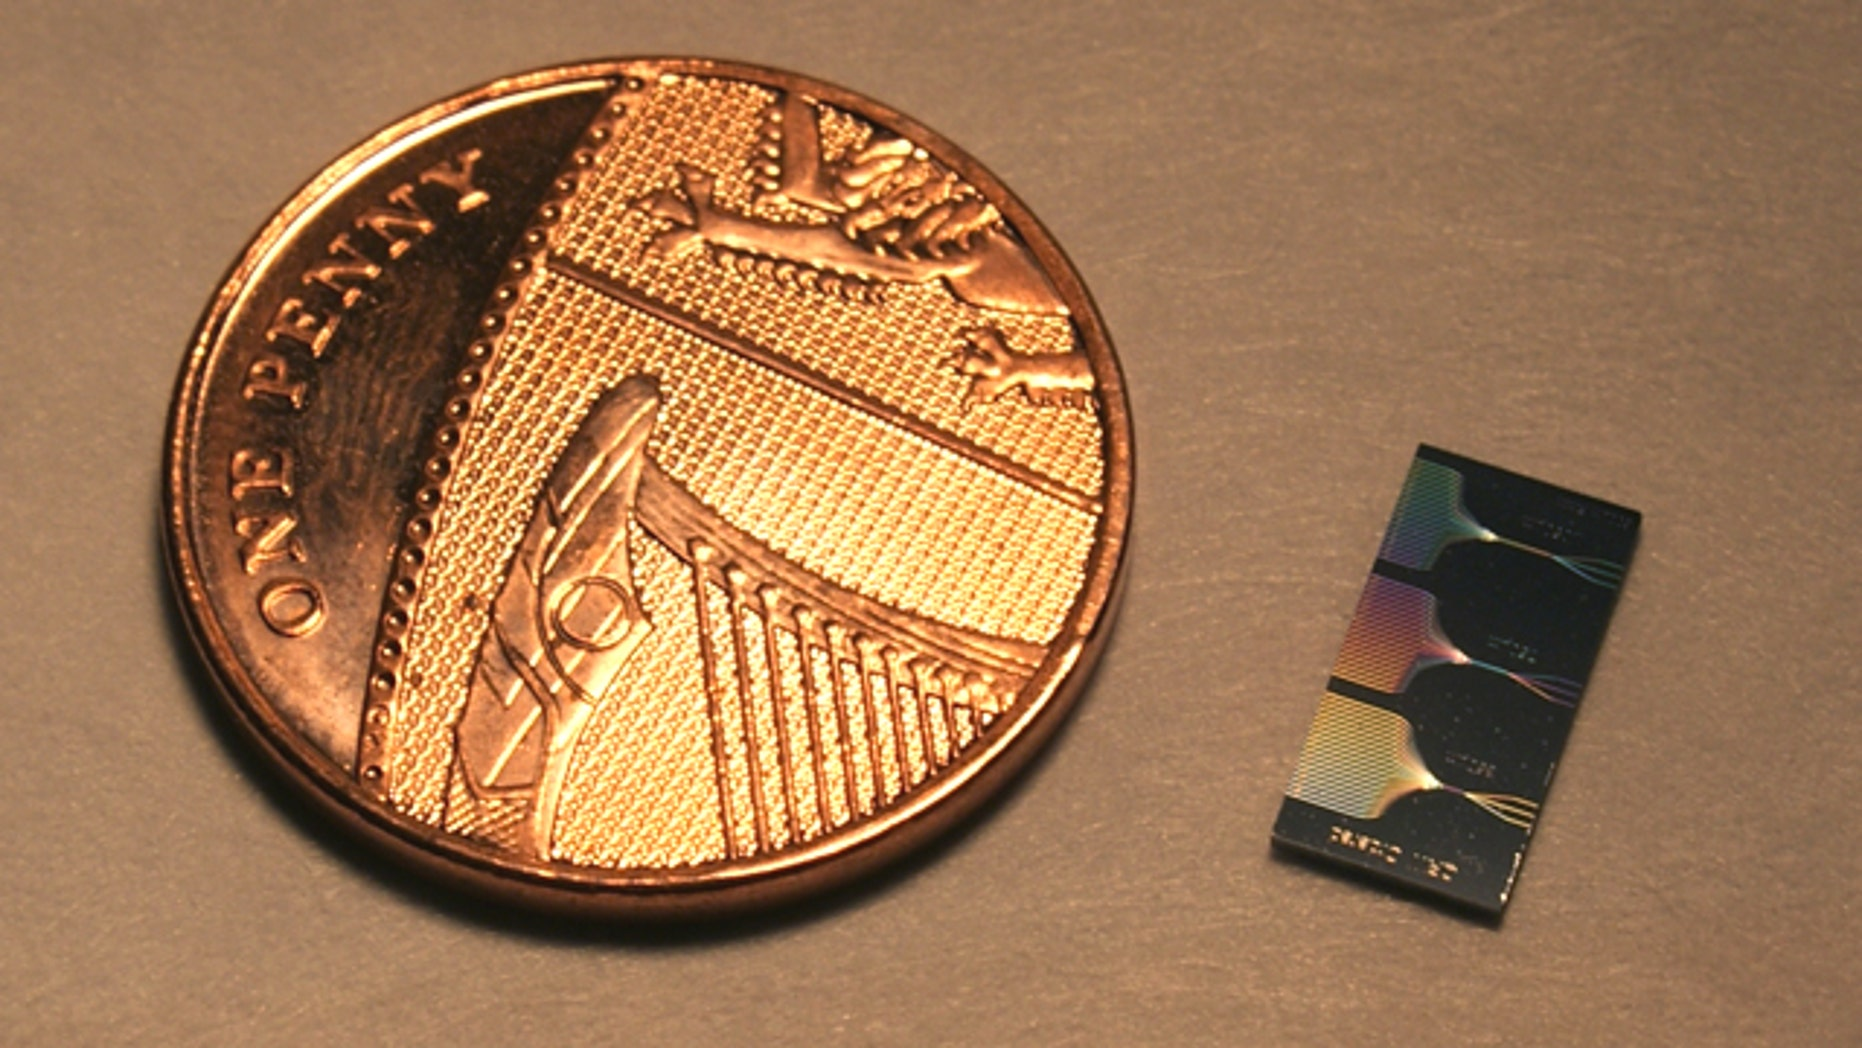 This is the photonic chip next to a UK penny. The chip contains micrometer and sub-micrometer features and guide light using a network of waveguides. The output of this network can be seen on the surface of the chip.